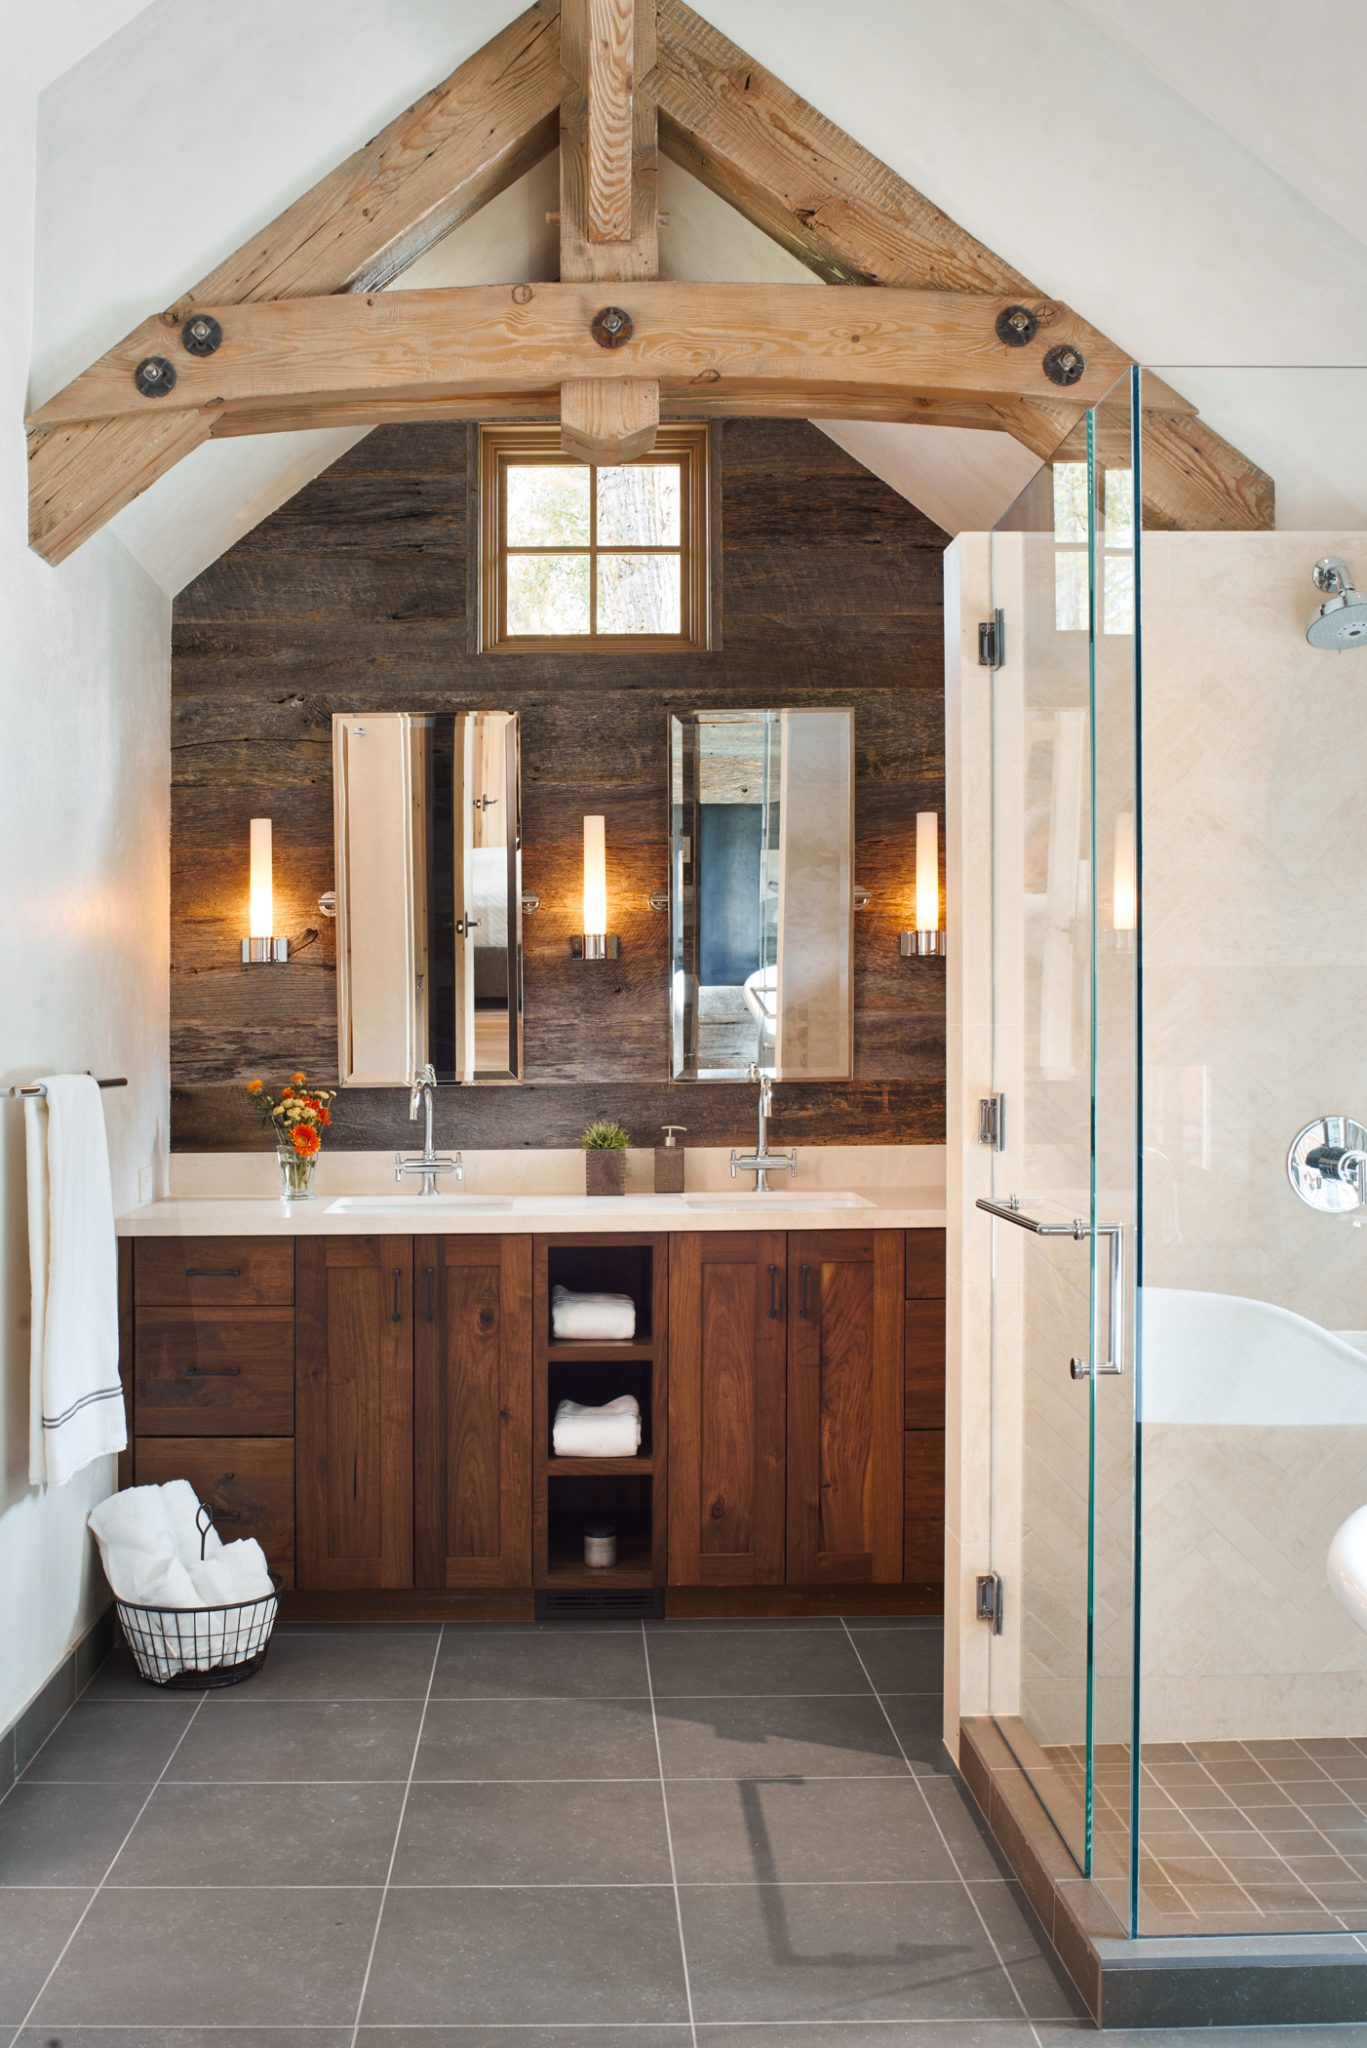 Mountain modern bath with light wood ceiling beams, glass shower and wood vanity. By Brewster McLeod Architects